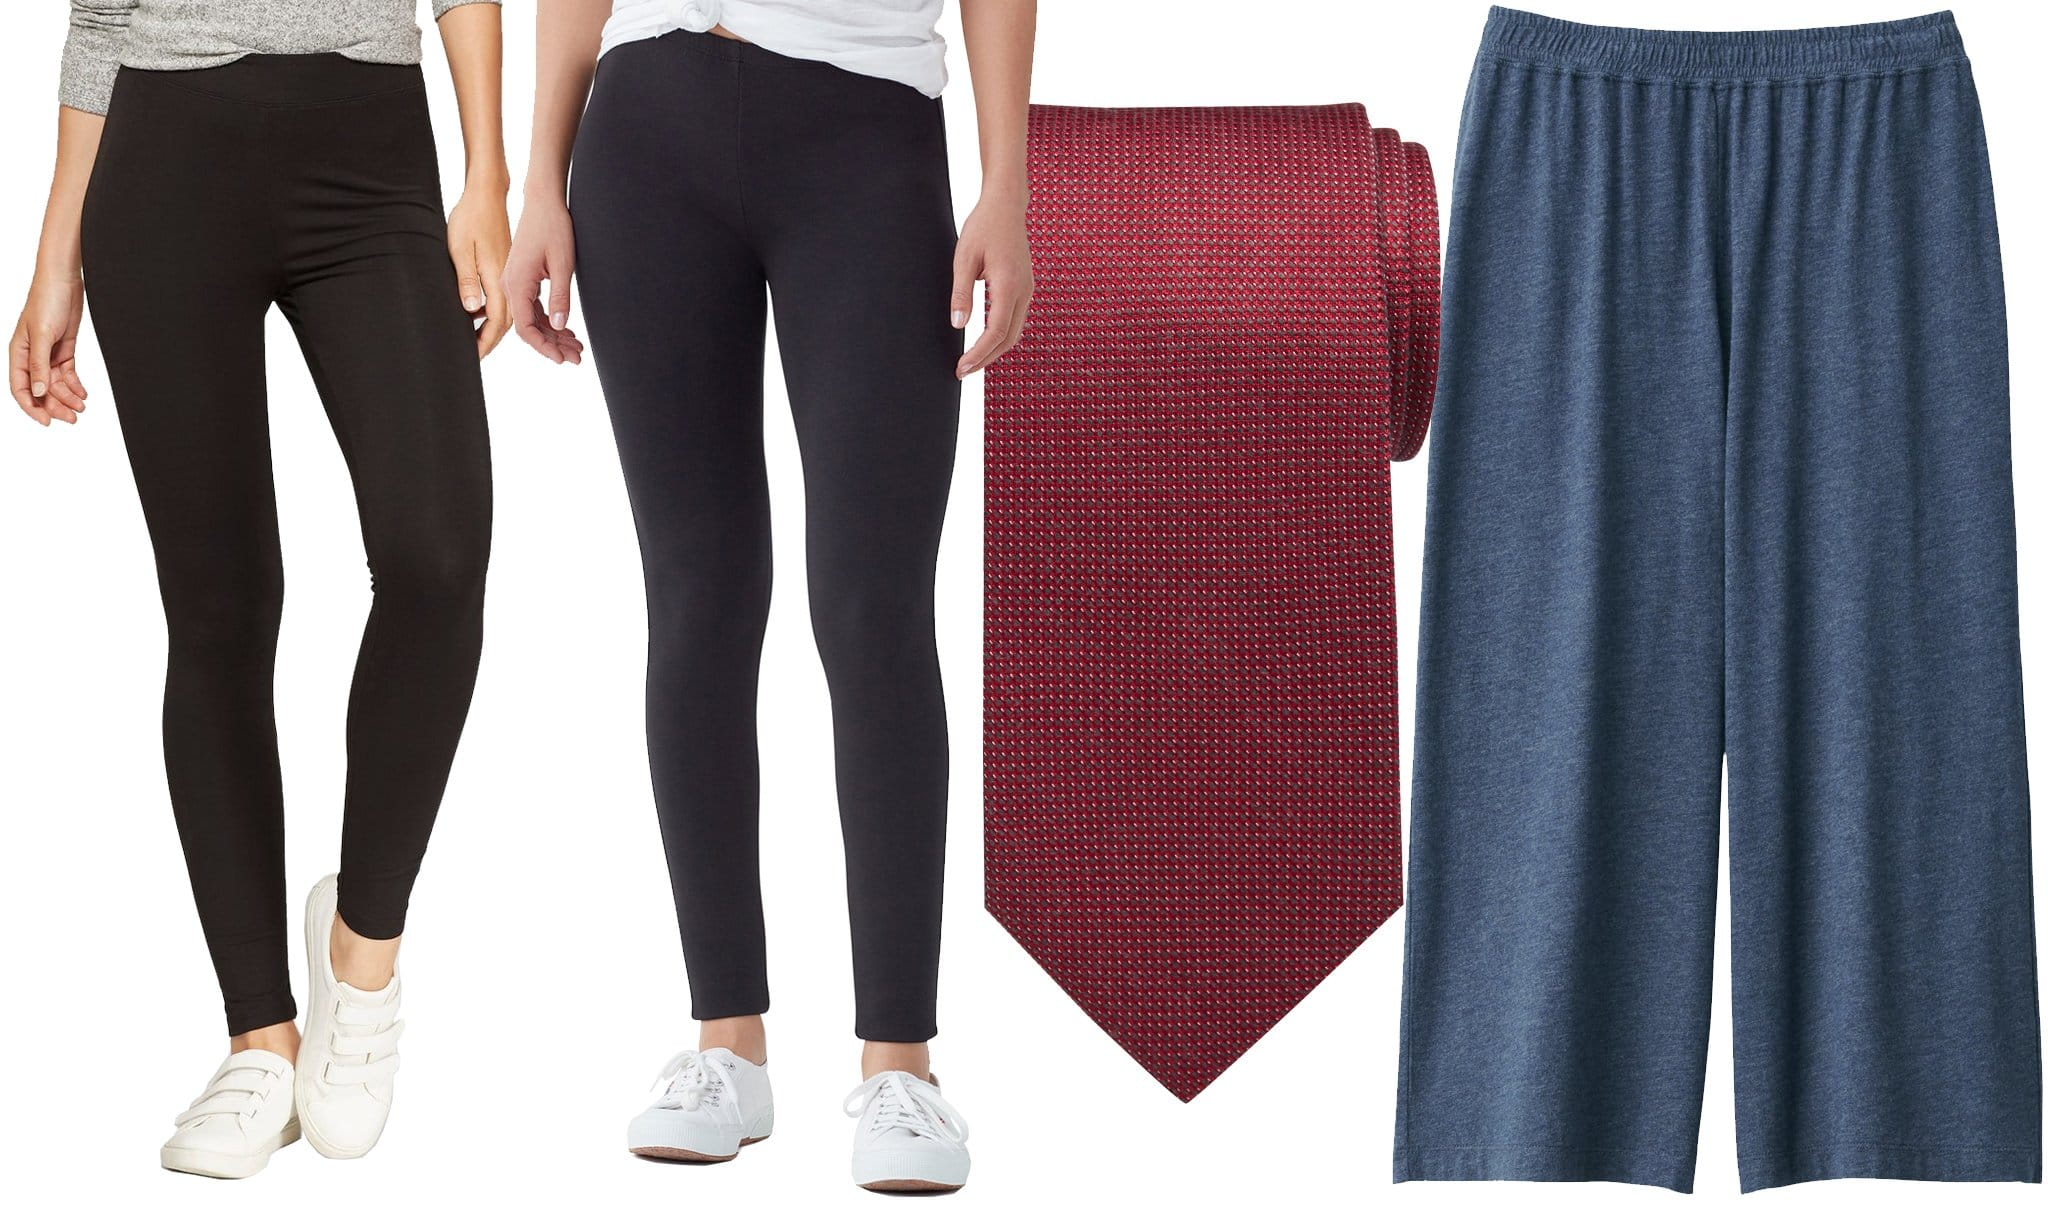 Rayon is commonly found in athletic wear like Target's $14.99 high-waisted leggings and Splendid's $158 French-Terry leggings as well as in accessories like Men's Warehouse's $50 necktie and in casual wear like Muji's $20 pants